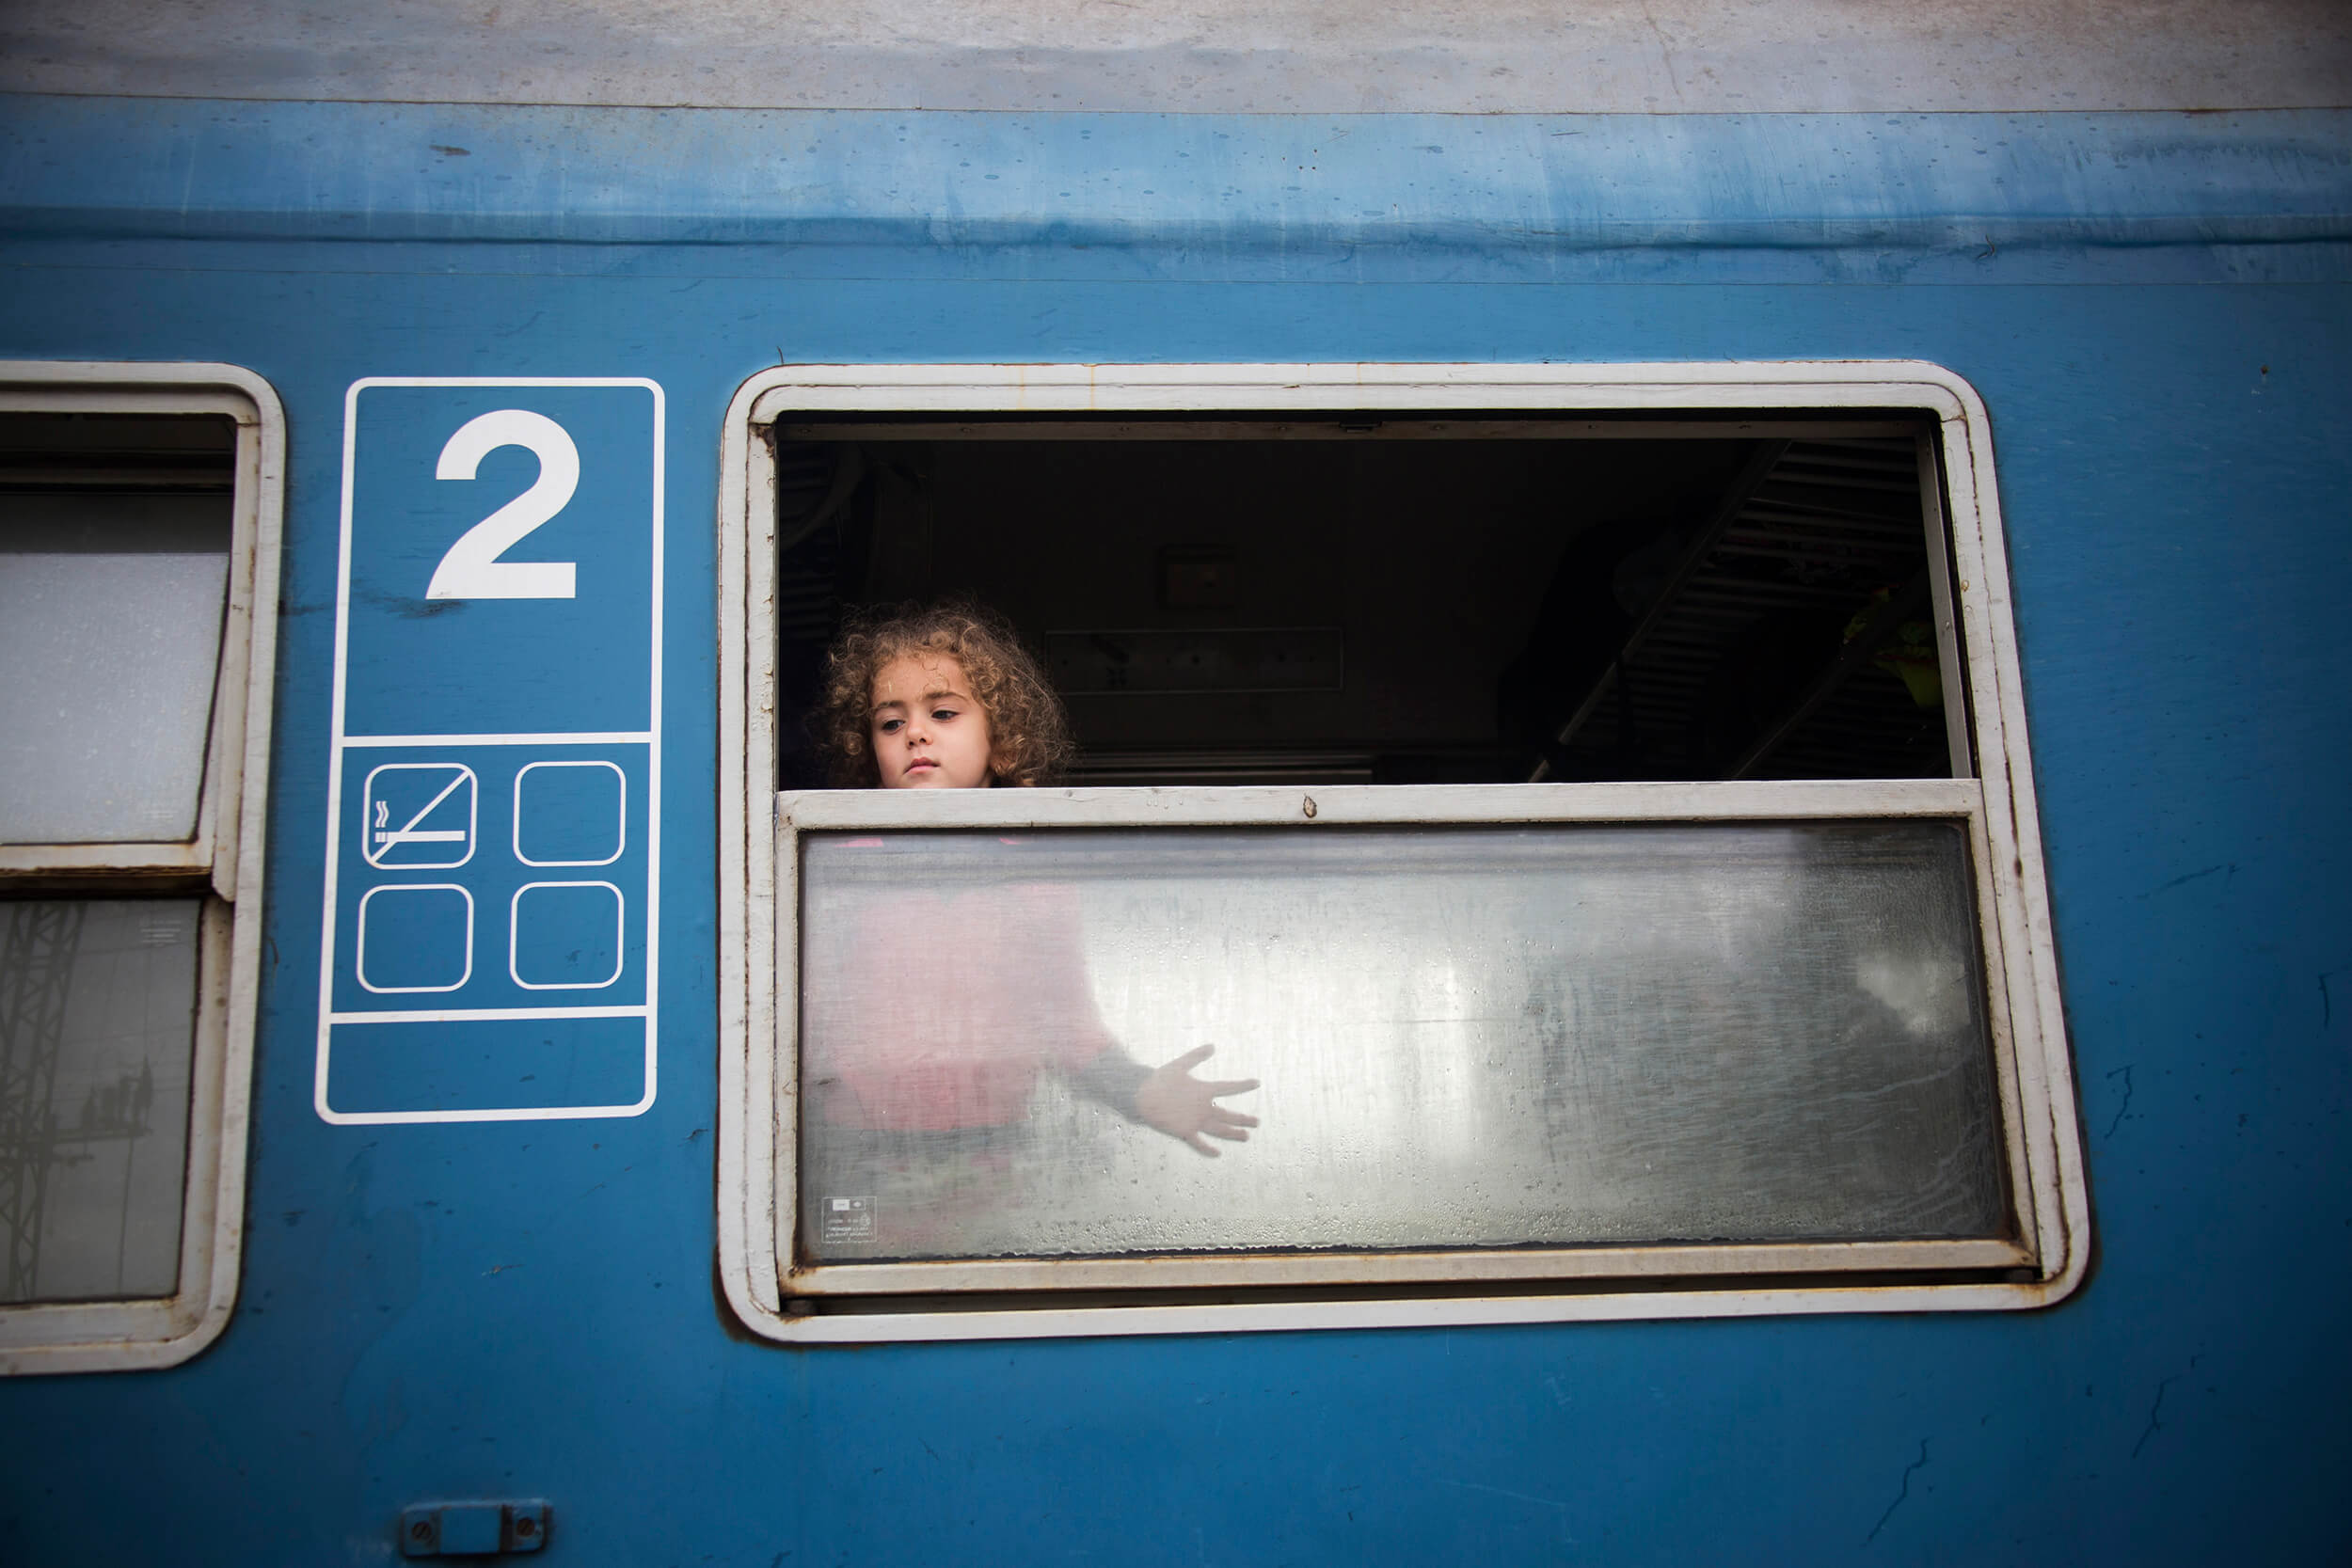 Hungaria. October 2015.Refugees from Syria, Afghanistan and Iraq arrive by train to the Hungarian border station Hegyeshalom, three kilometers walk to the border with Austria, to Nickelsdorf, for further transportation by bus to Vienna.